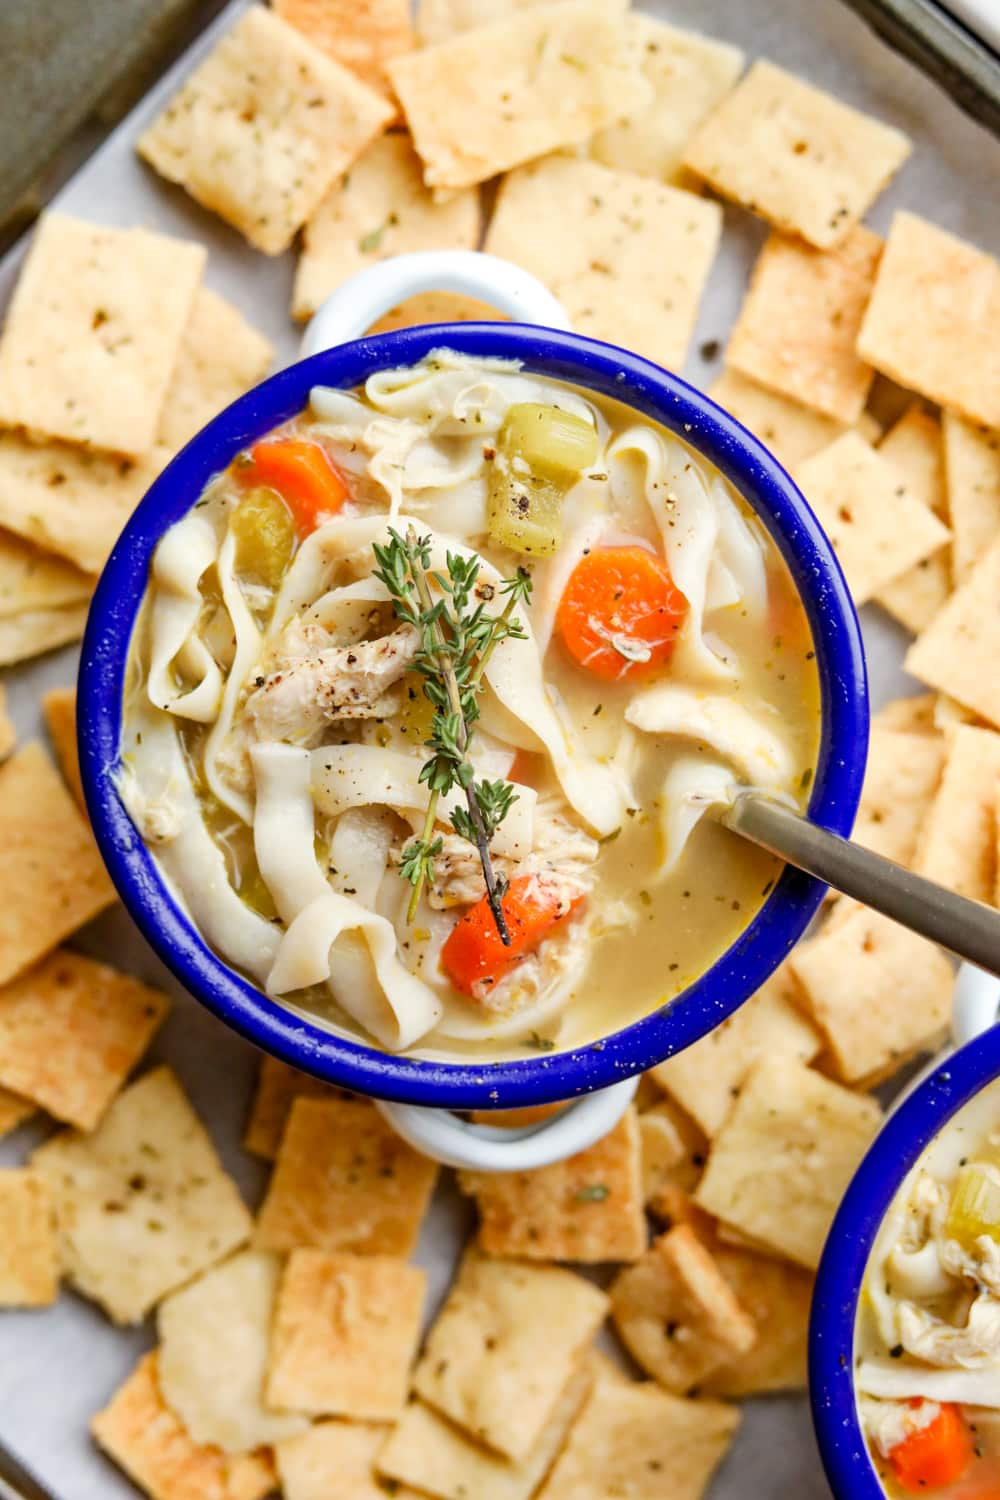 A bowl of chicken noodle soup that's surrounded by cheese crackers. There's a spoon in the bowl.